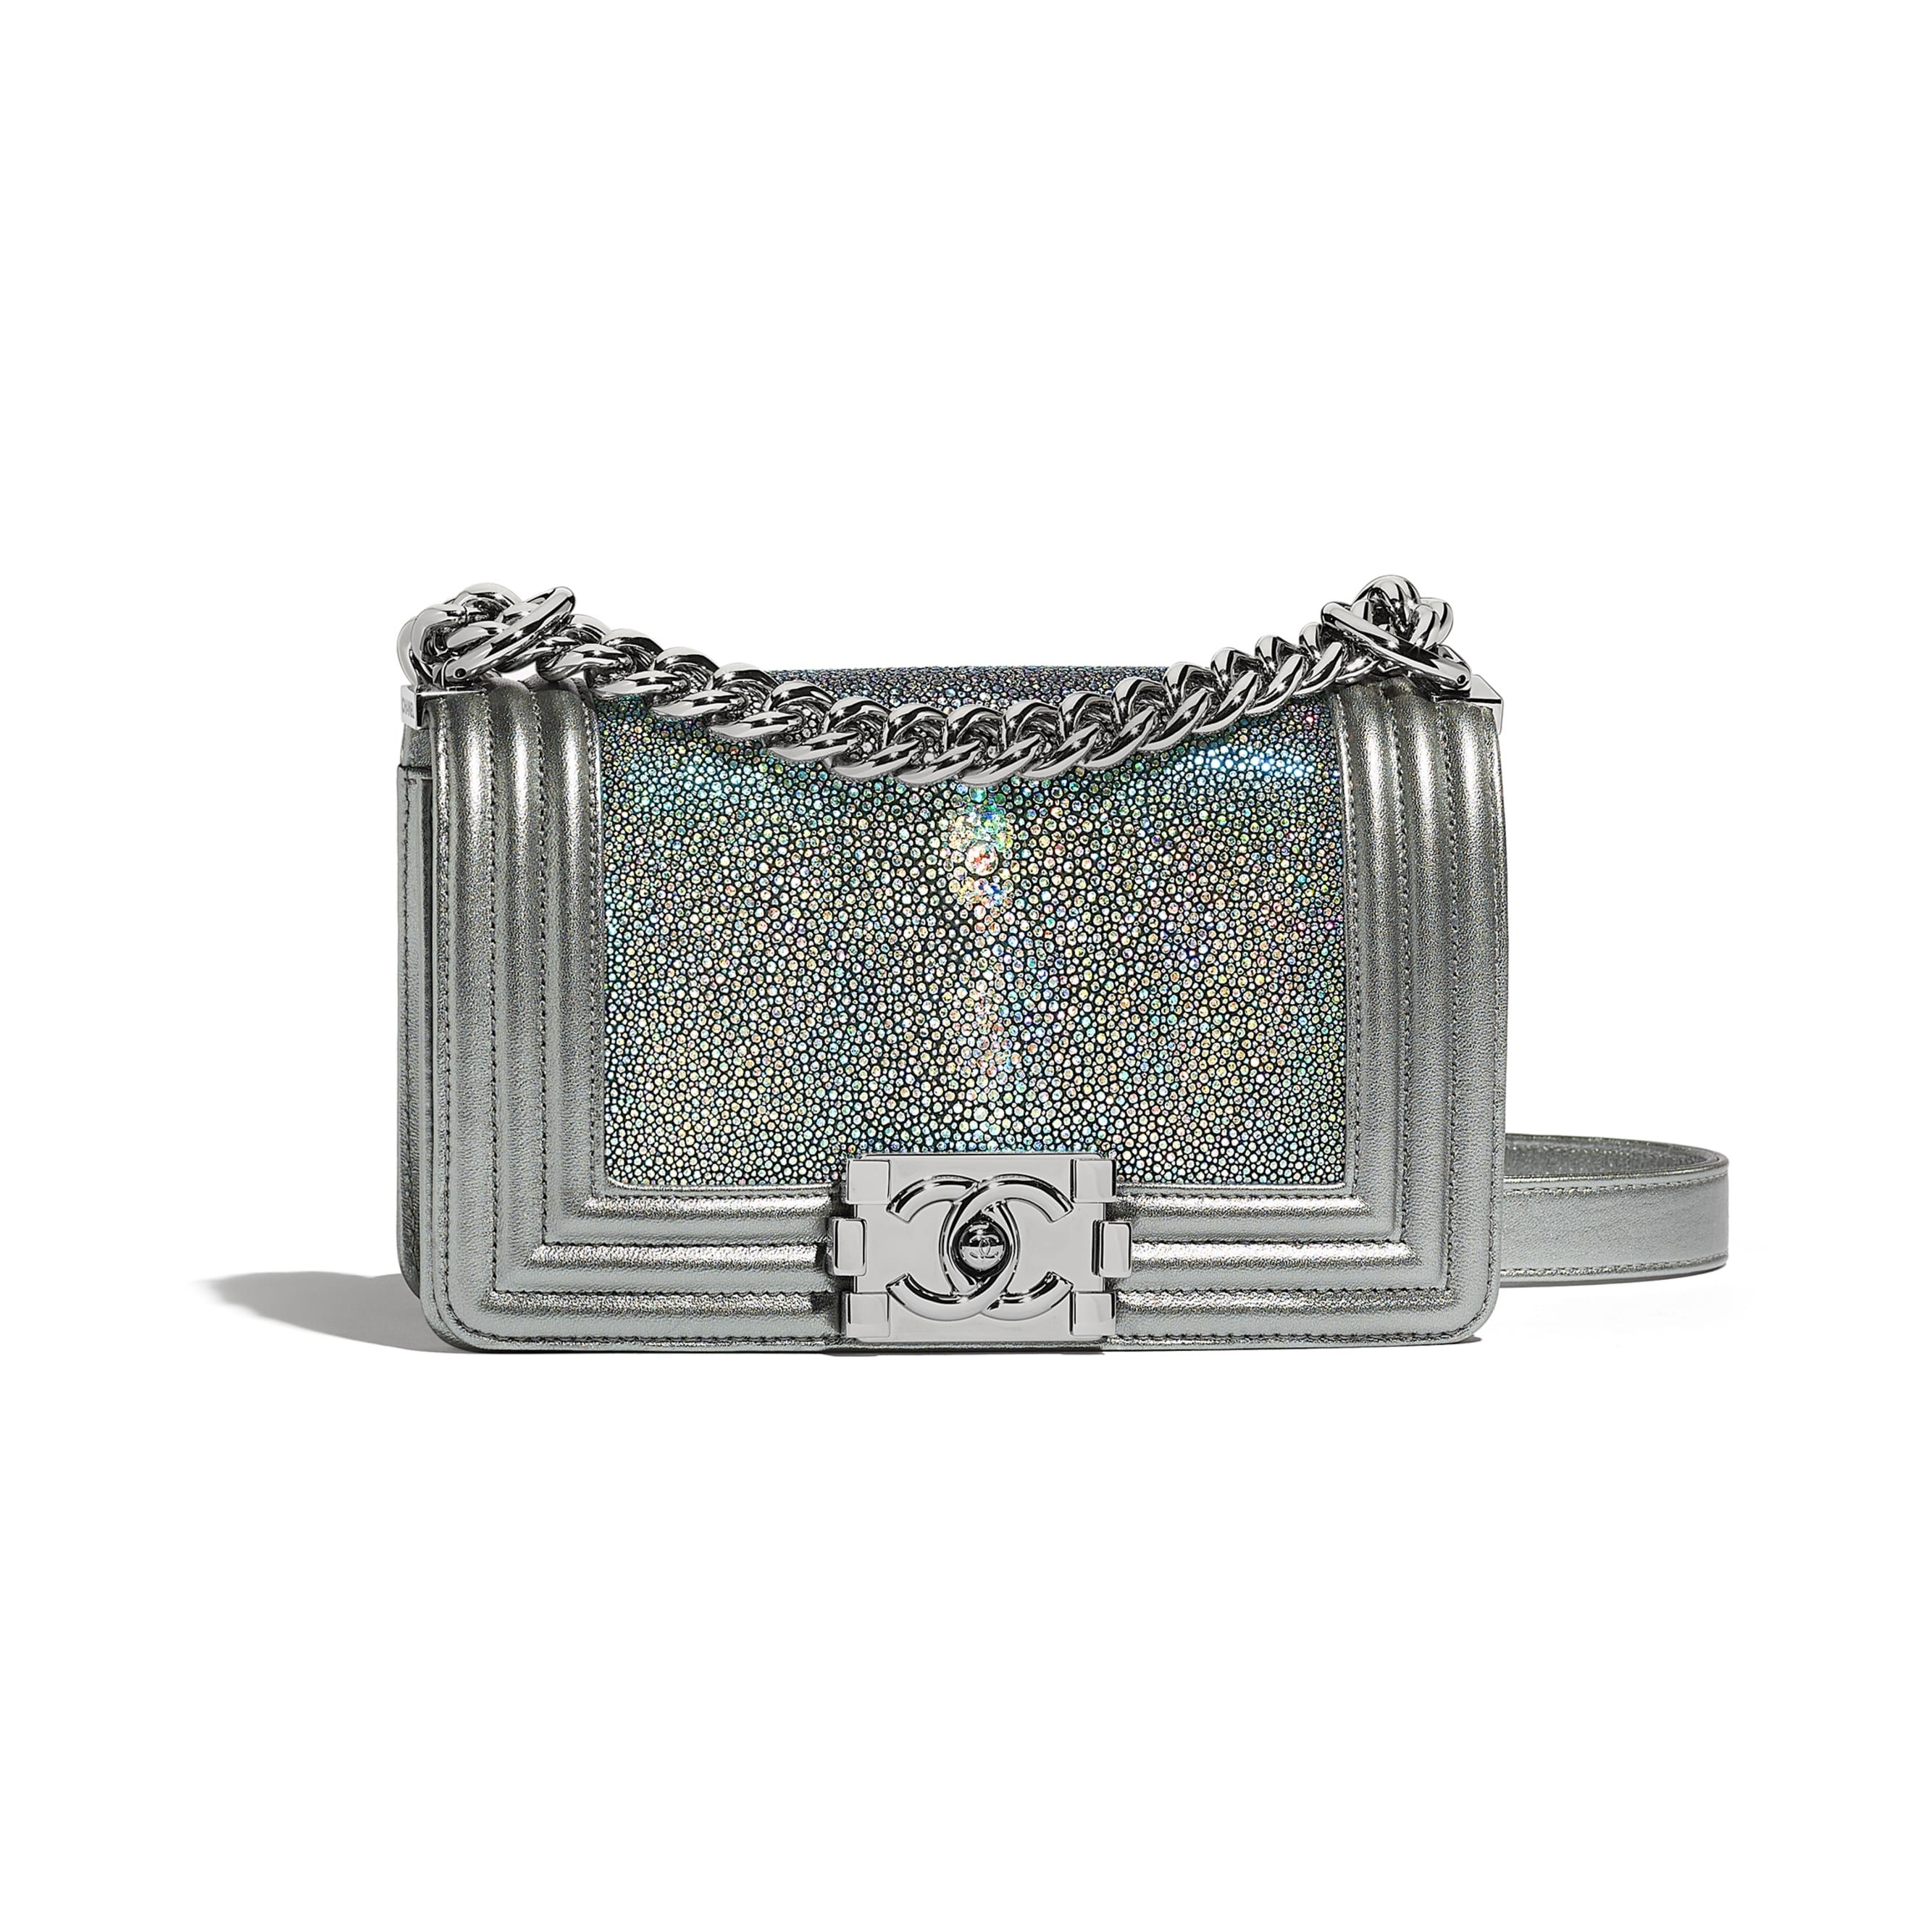 e431a2dbb5353e Small BOY CHANEL Handbag - Silver - Galuchat, Metallic Lambskin &  Ruthenium-Finish Metal - Default view - see standard sized version